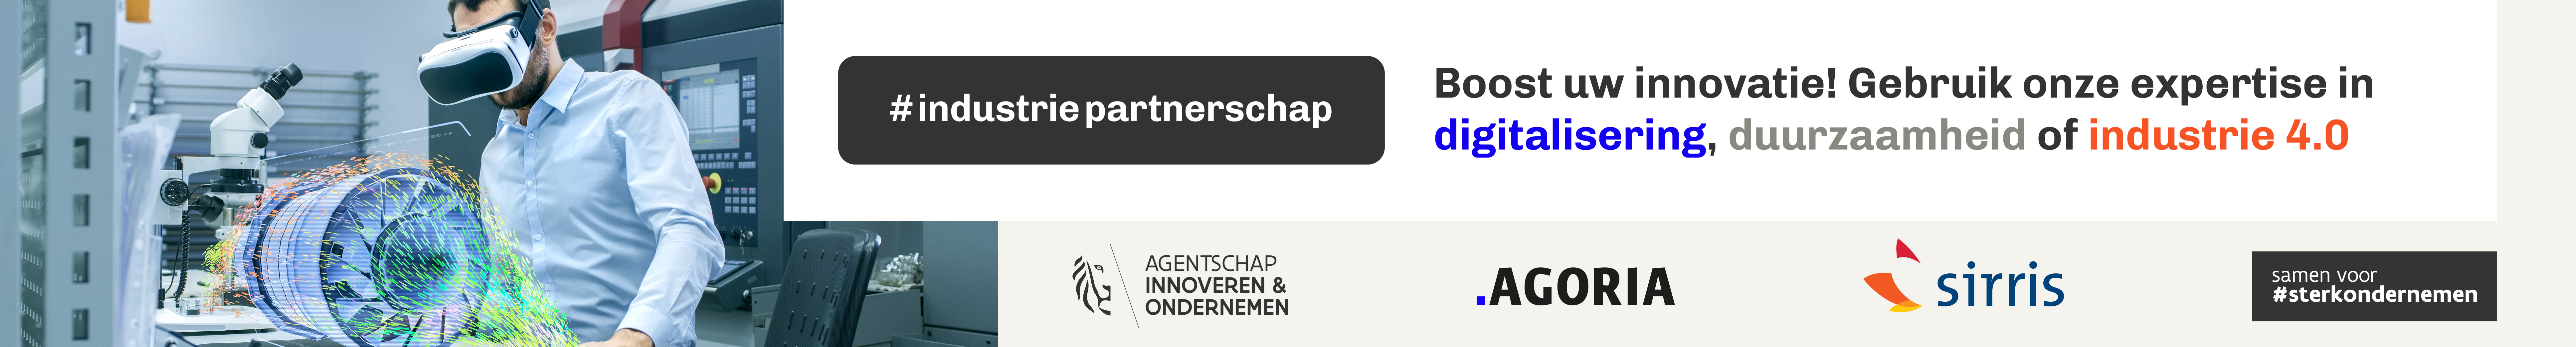 industriepartnerschap